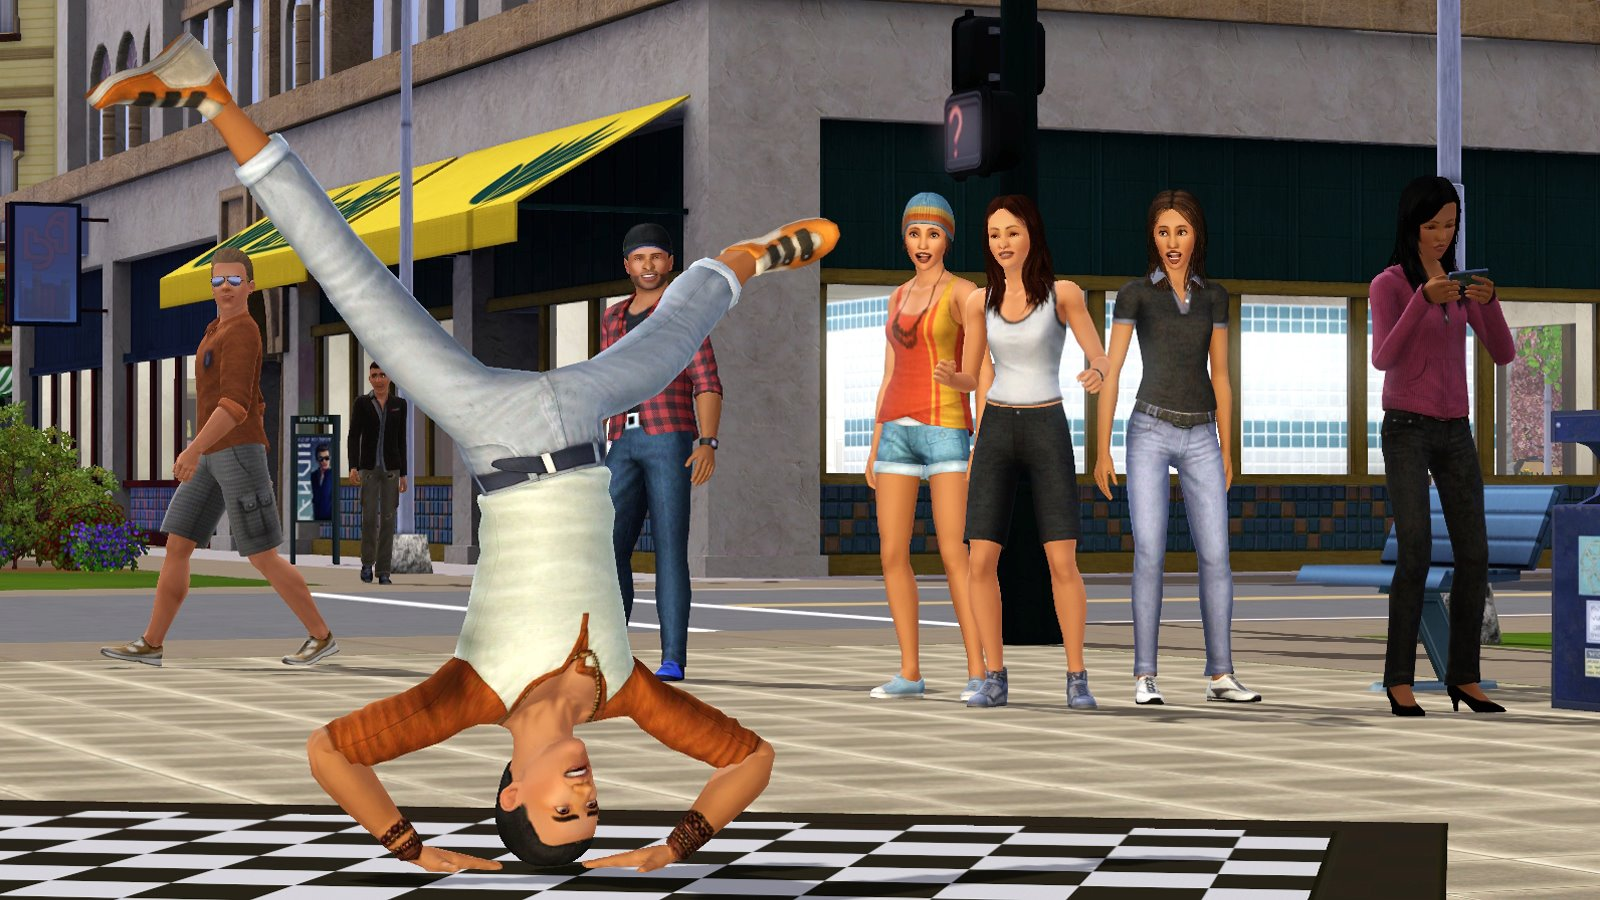 sims 3 online dating not working